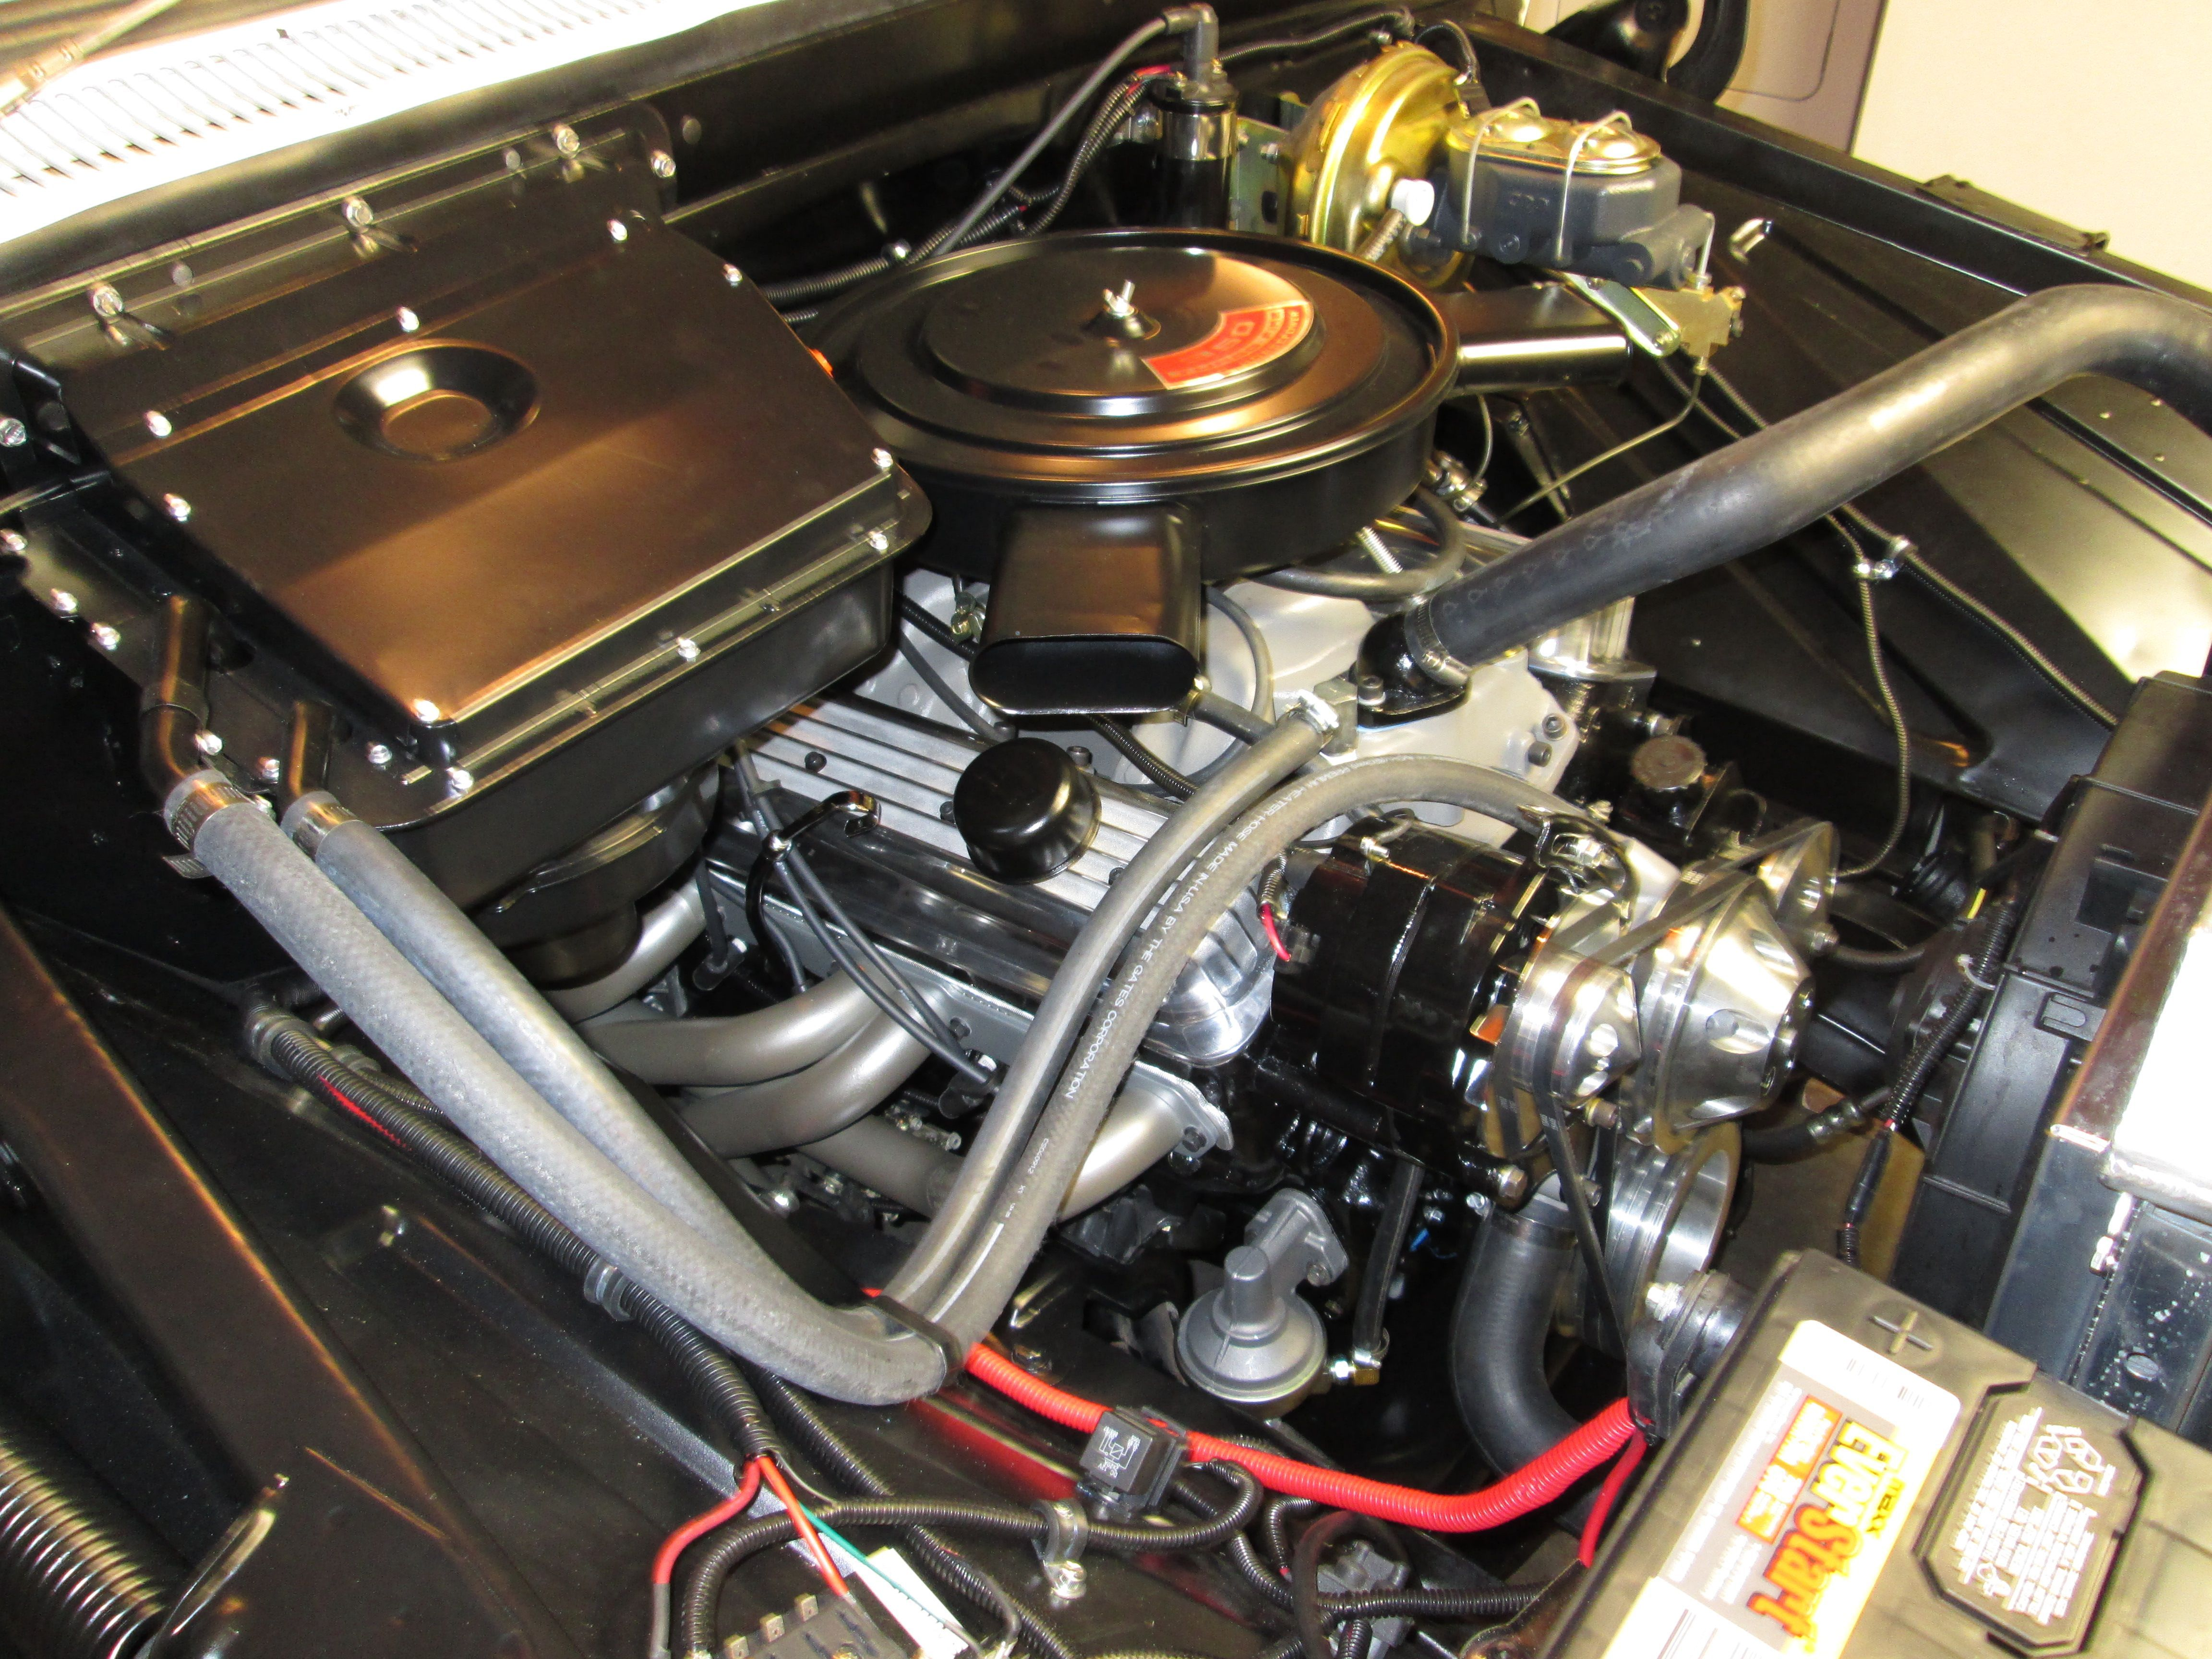 355ci crate engine small block gm style longblock iron heads blueprint engines has received a photo submission of our bp35511ct1 installed into this 1966 chevy c10 malvernweather Image collections